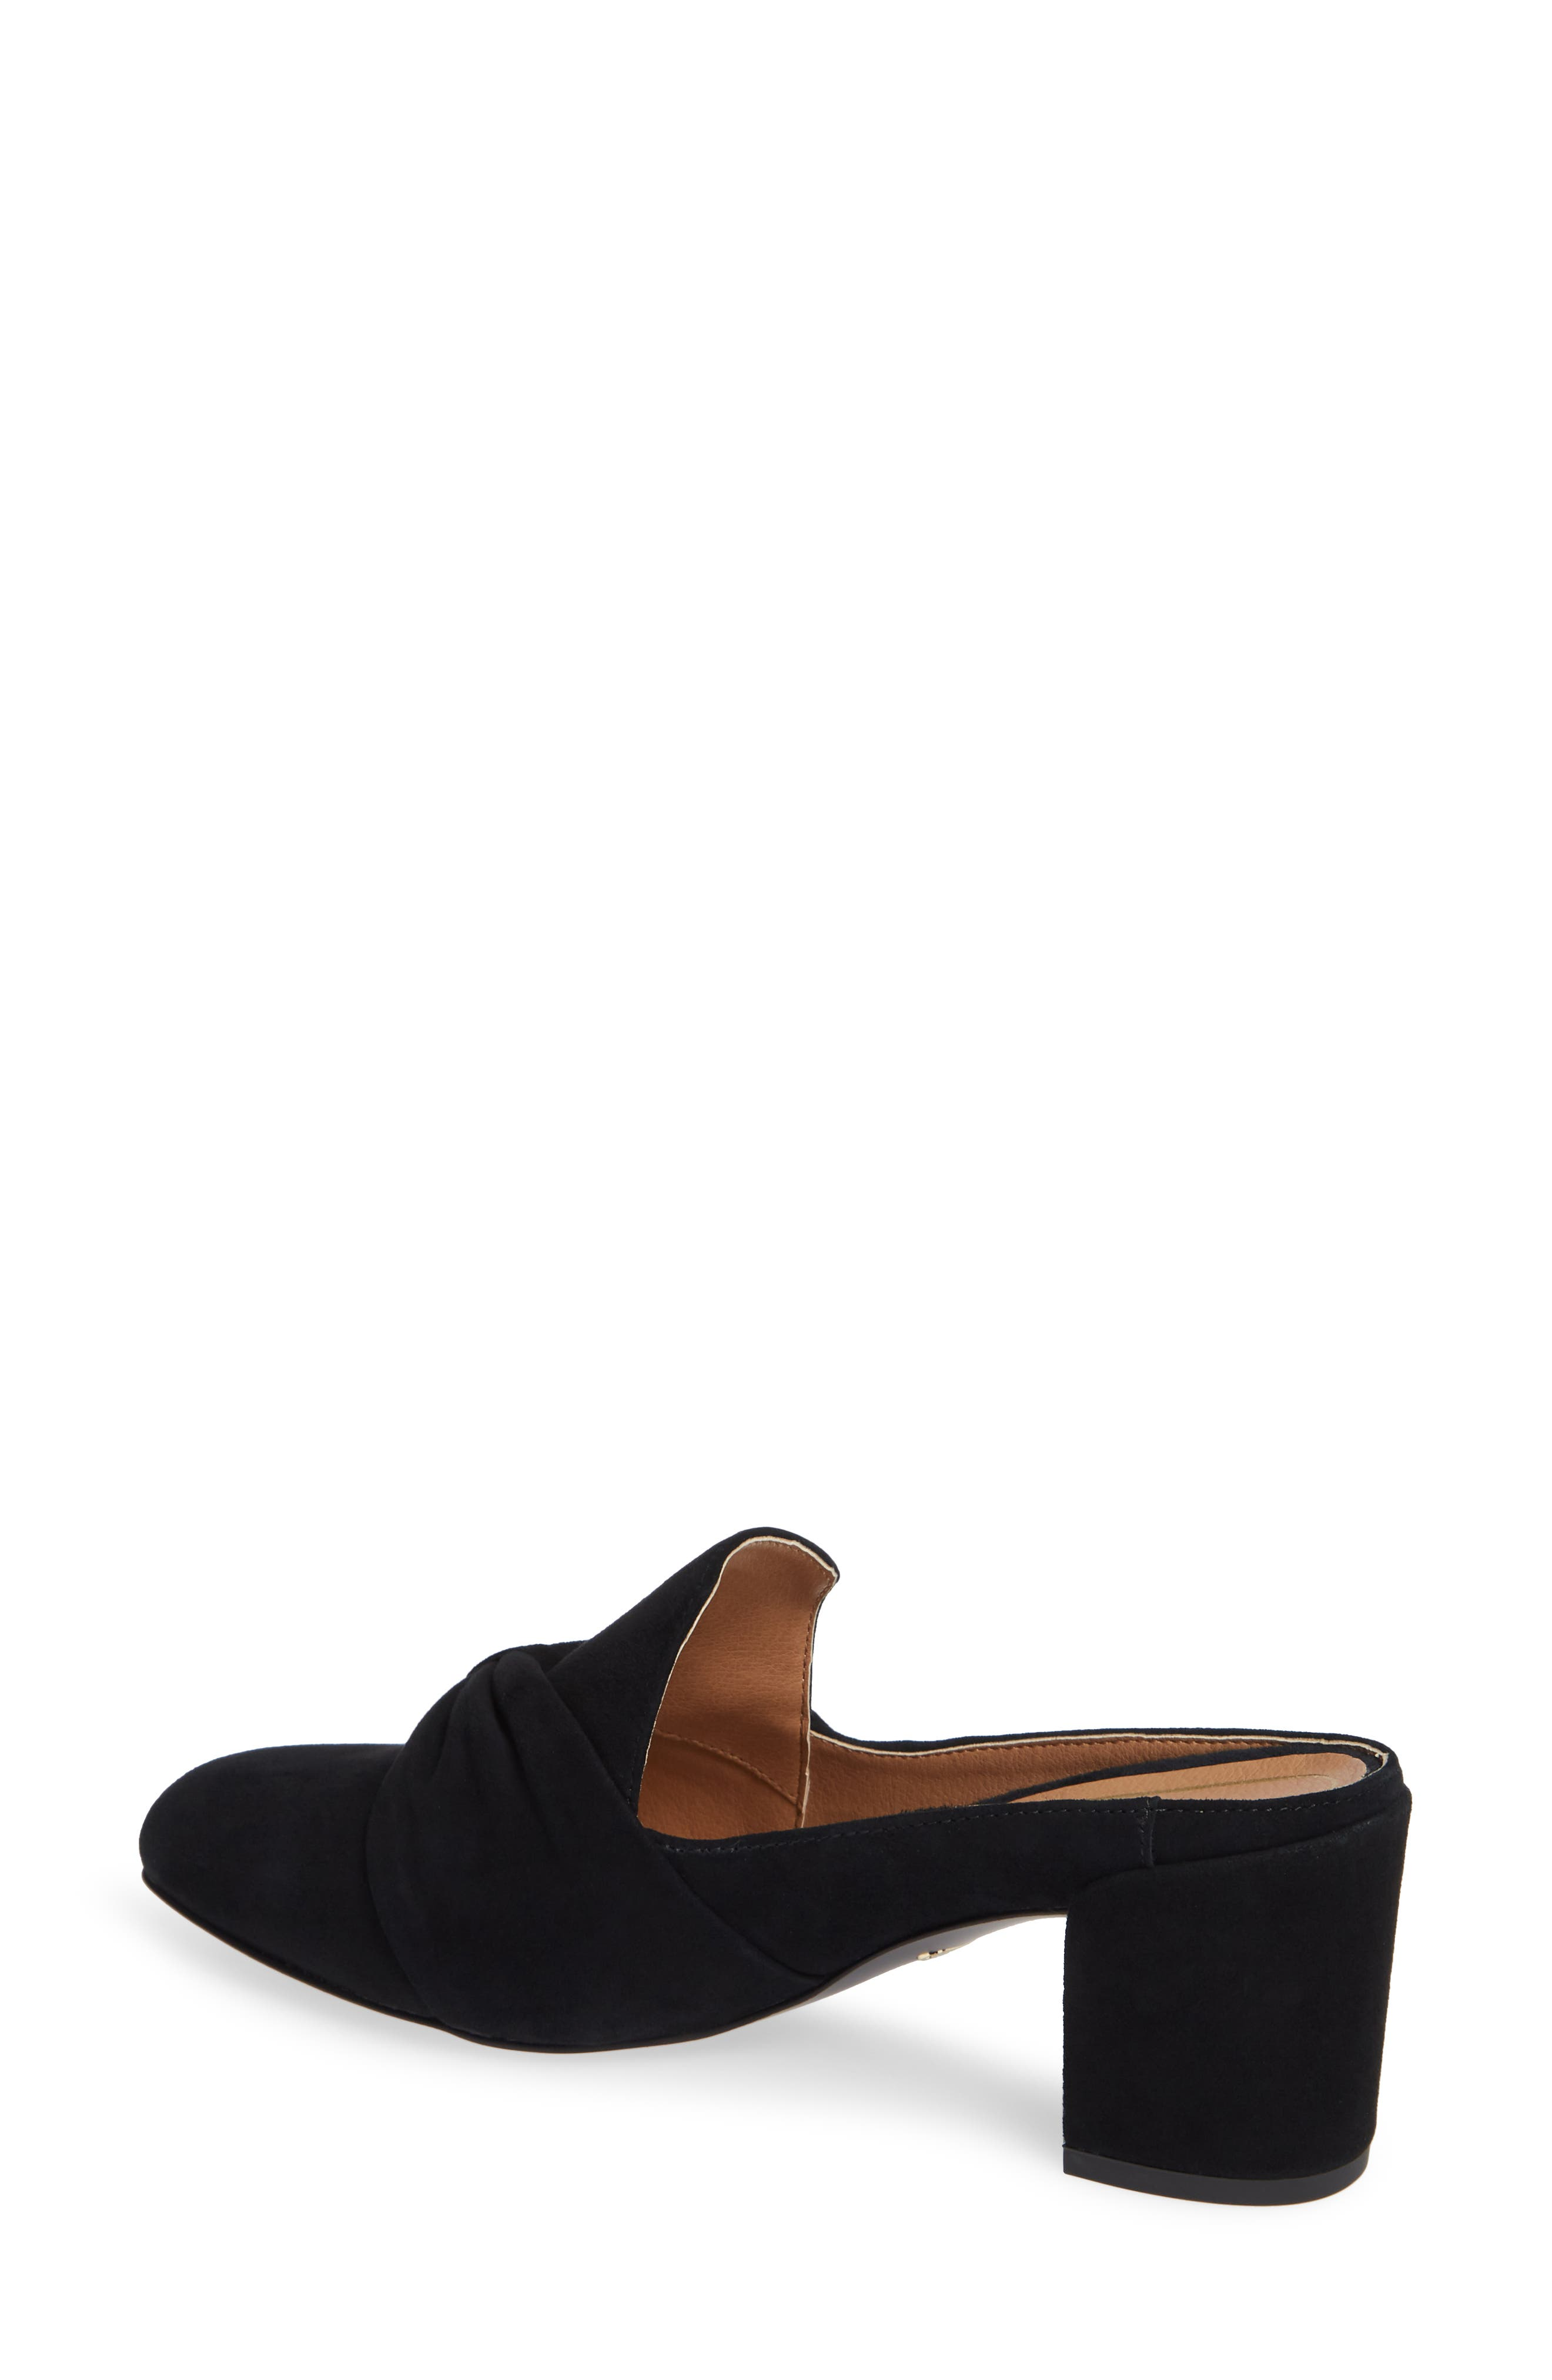 Presley Mule,                             Alternate thumbnail 2, color,                             BLACK SUEDE